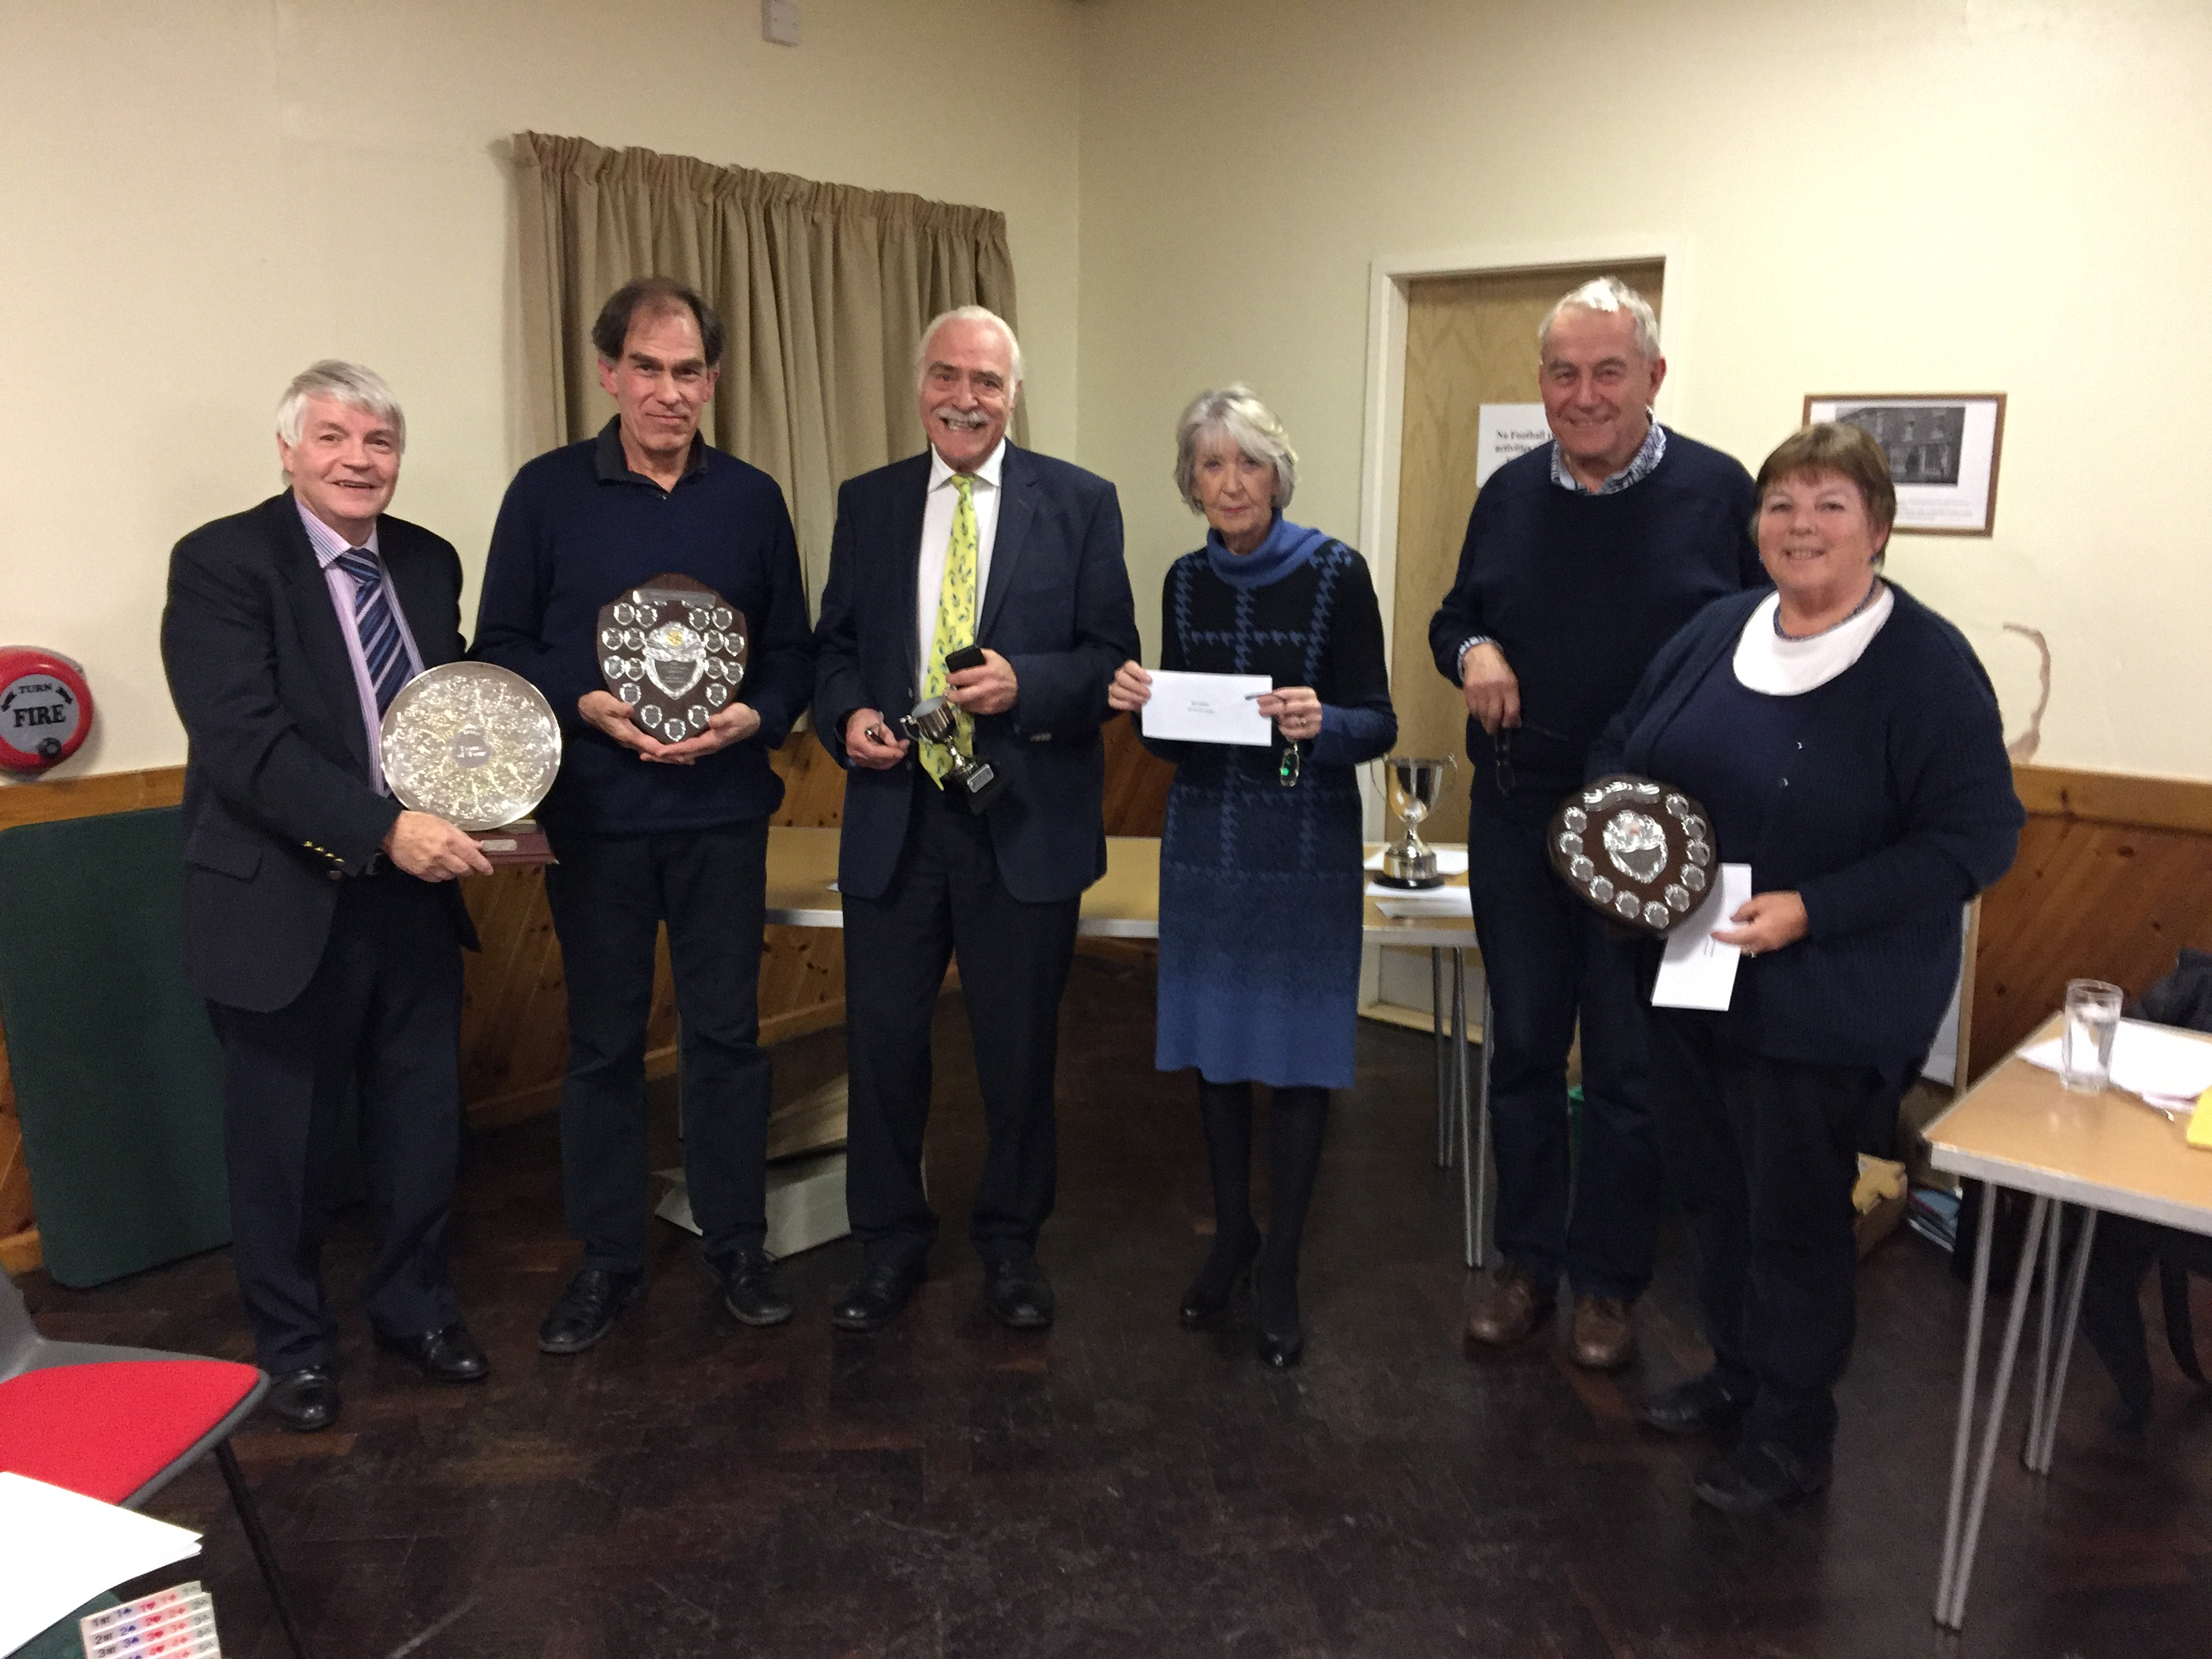 Prize Giving at the AGM November 2016